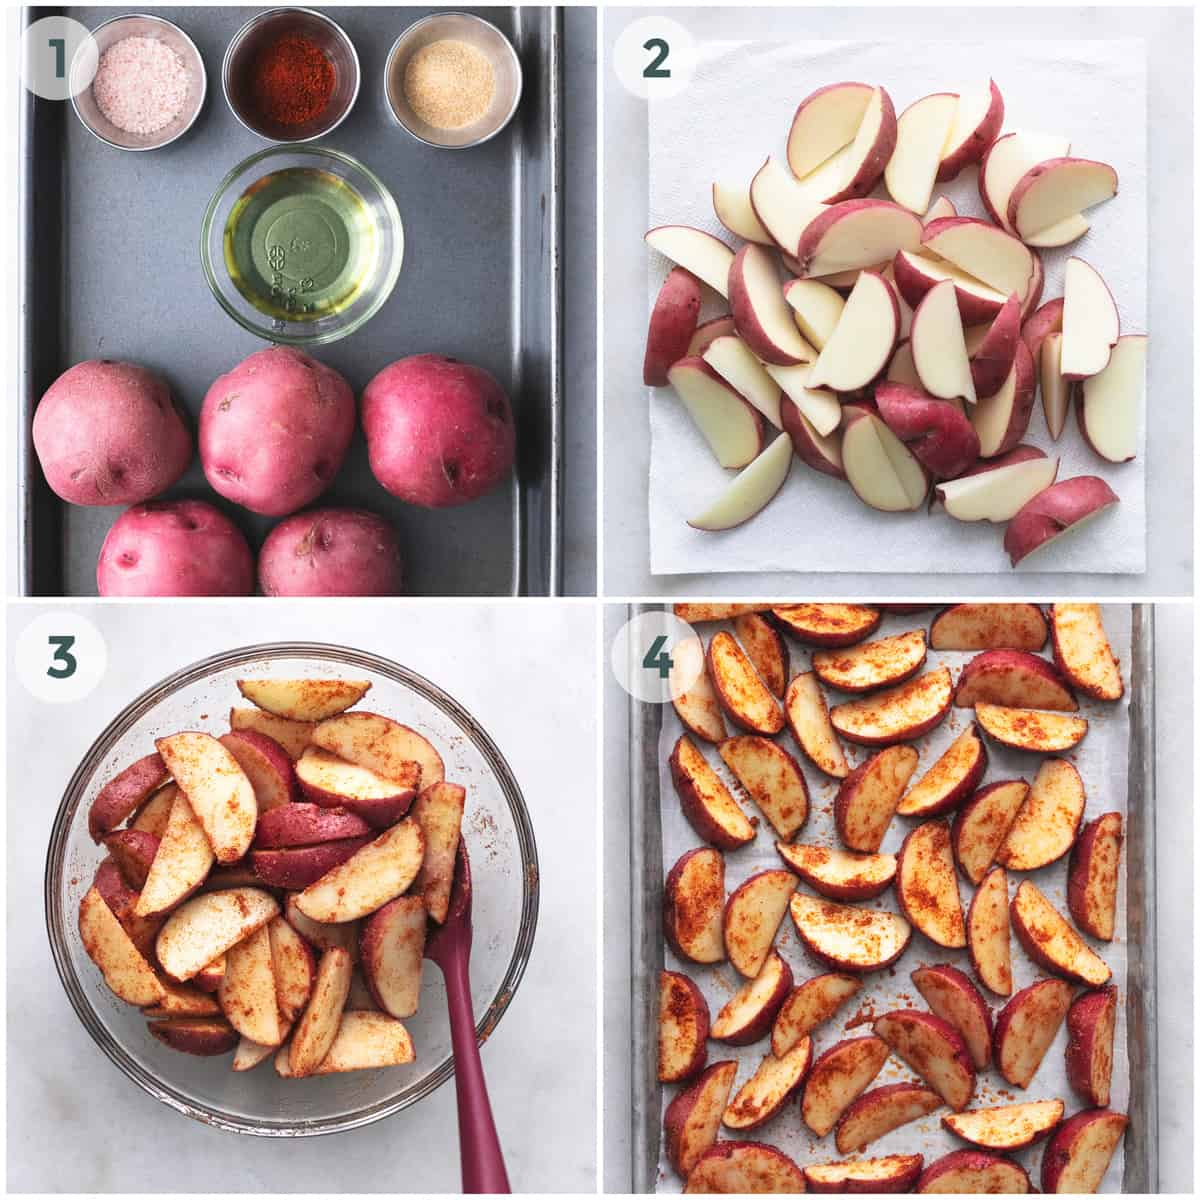 collage of four images showing step by step directions for baking potato wedges